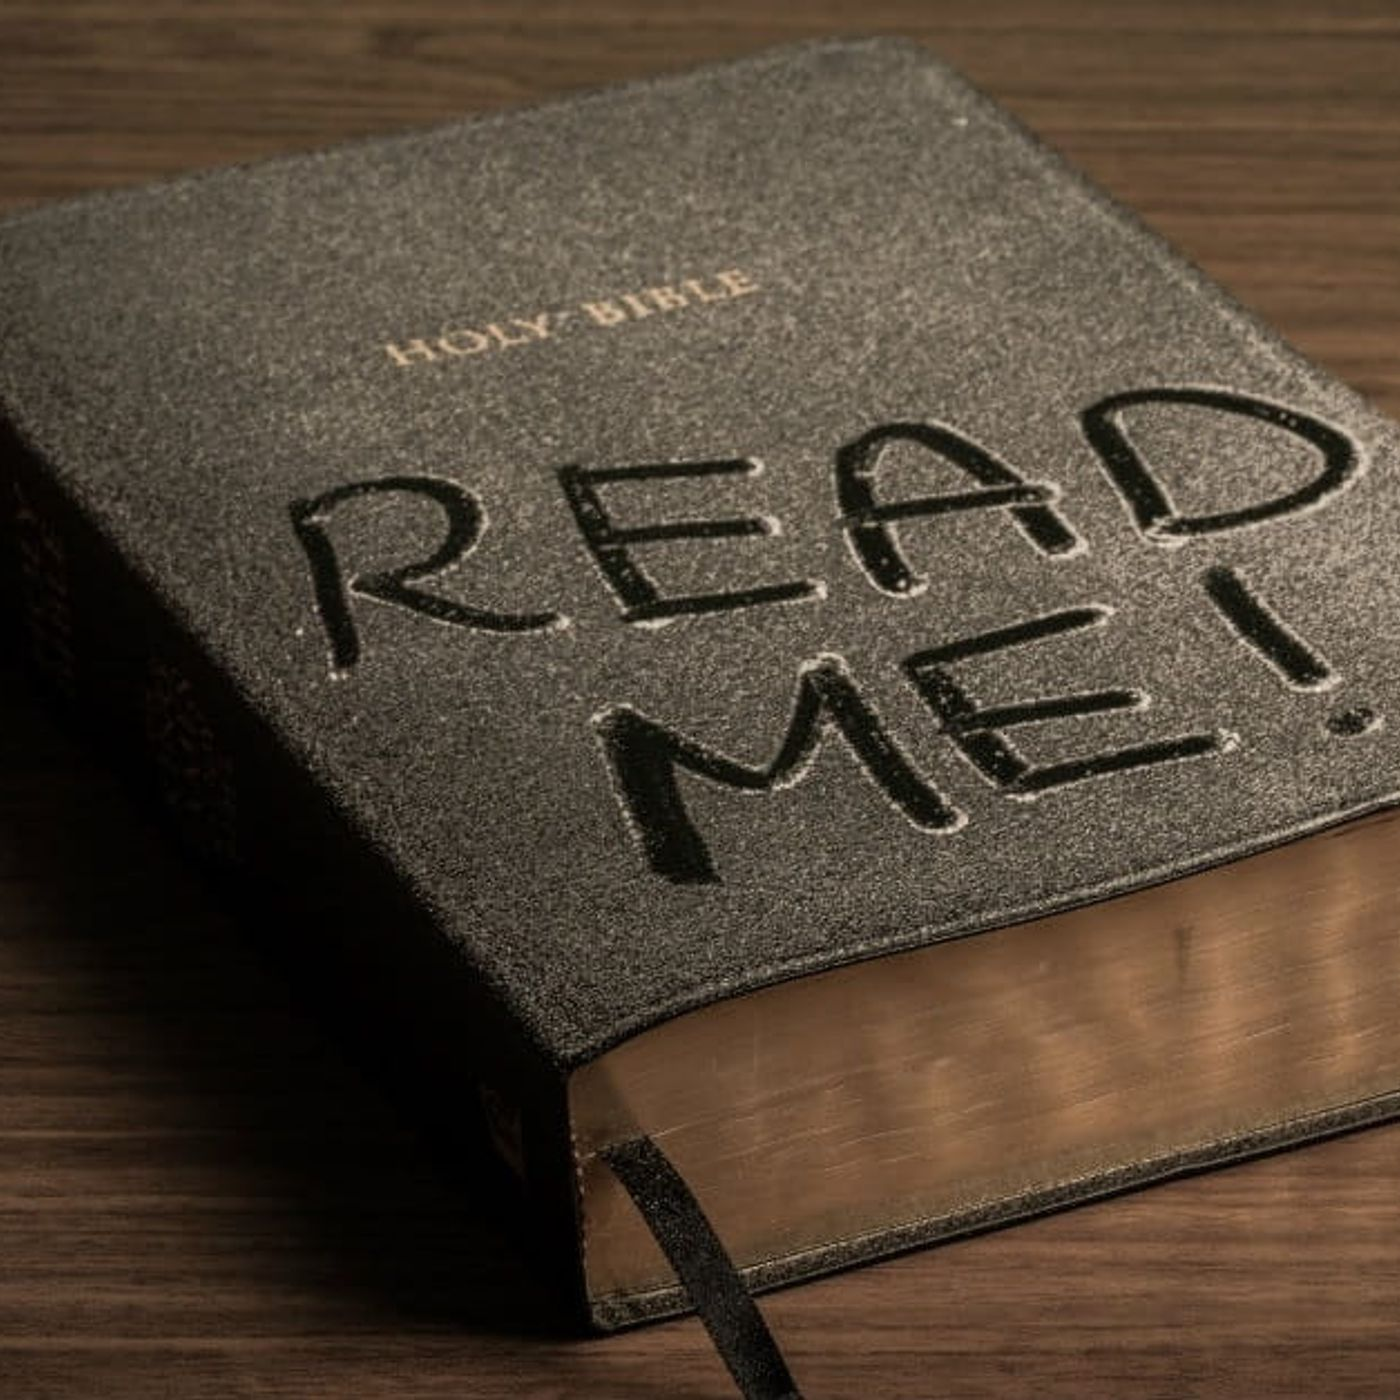 Why People Aren't Reading The Bible